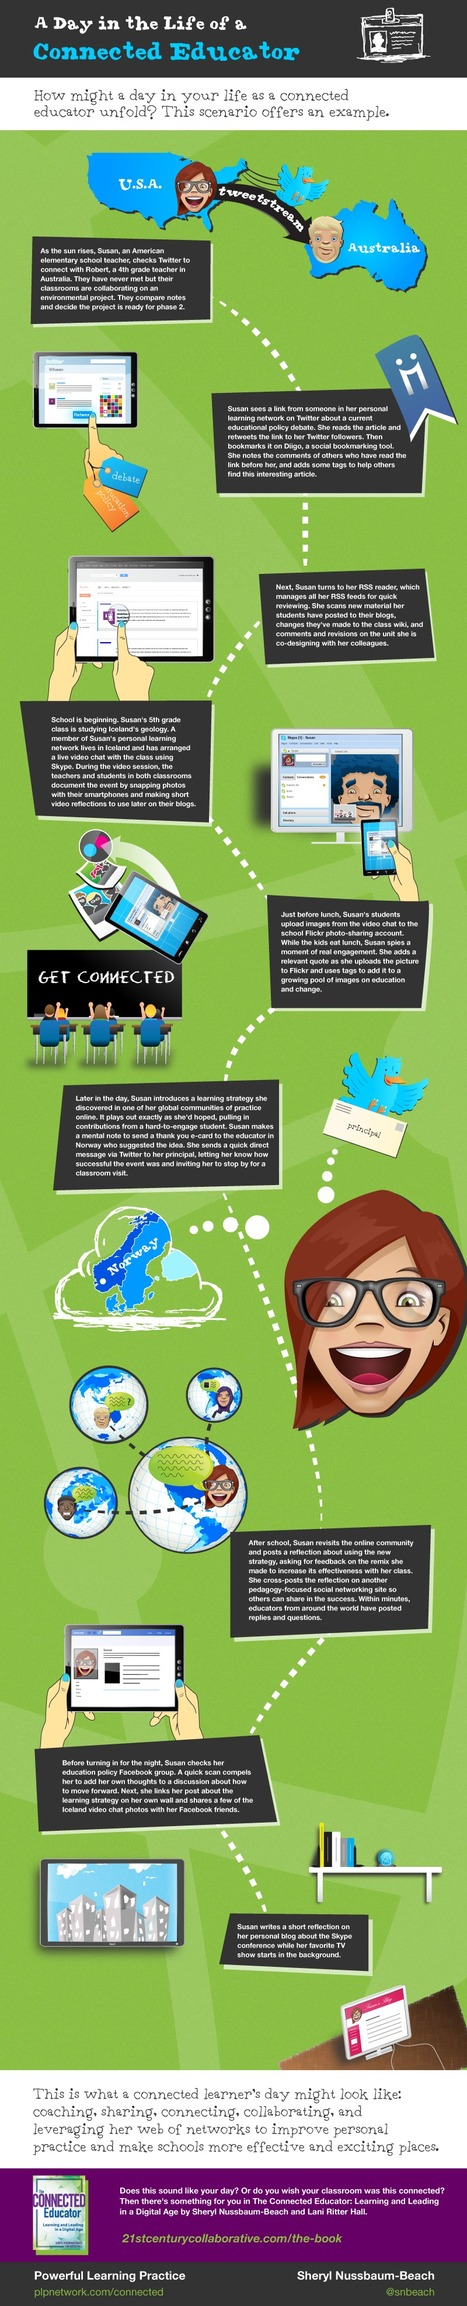 A Day in the Life of a 21st Century Connected Teacher Infographic | e-Learning Infographics | Mundos Virtuales, Educacion Conectada y Aprendizaje de Lenguas | Scoop.it